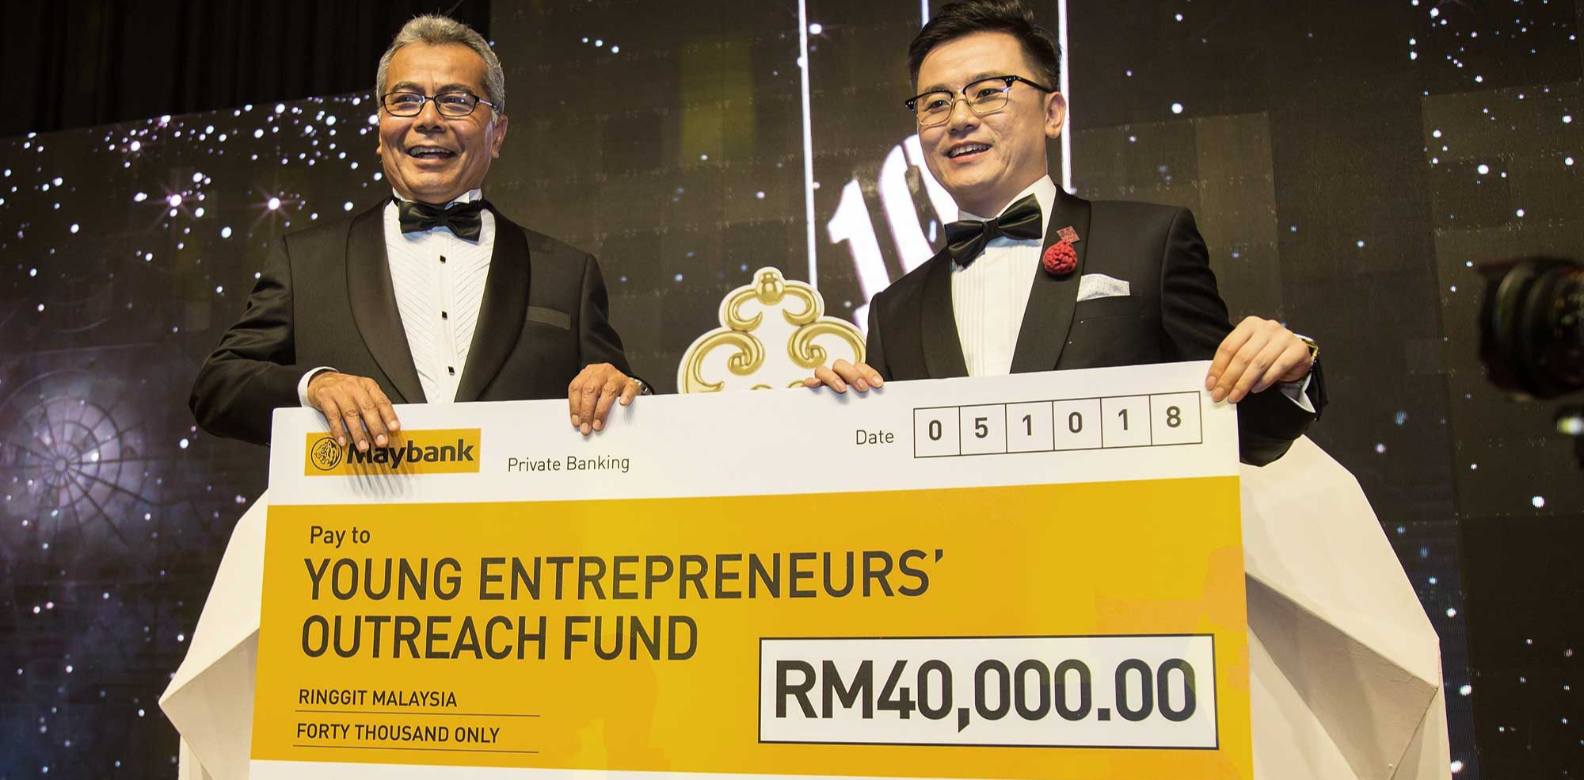 Dato' KK Chua presenting a cheque to Datuk Seri Mohd Redzuan Md Yusof for the Young Entrepreneurs' Outreach Fund